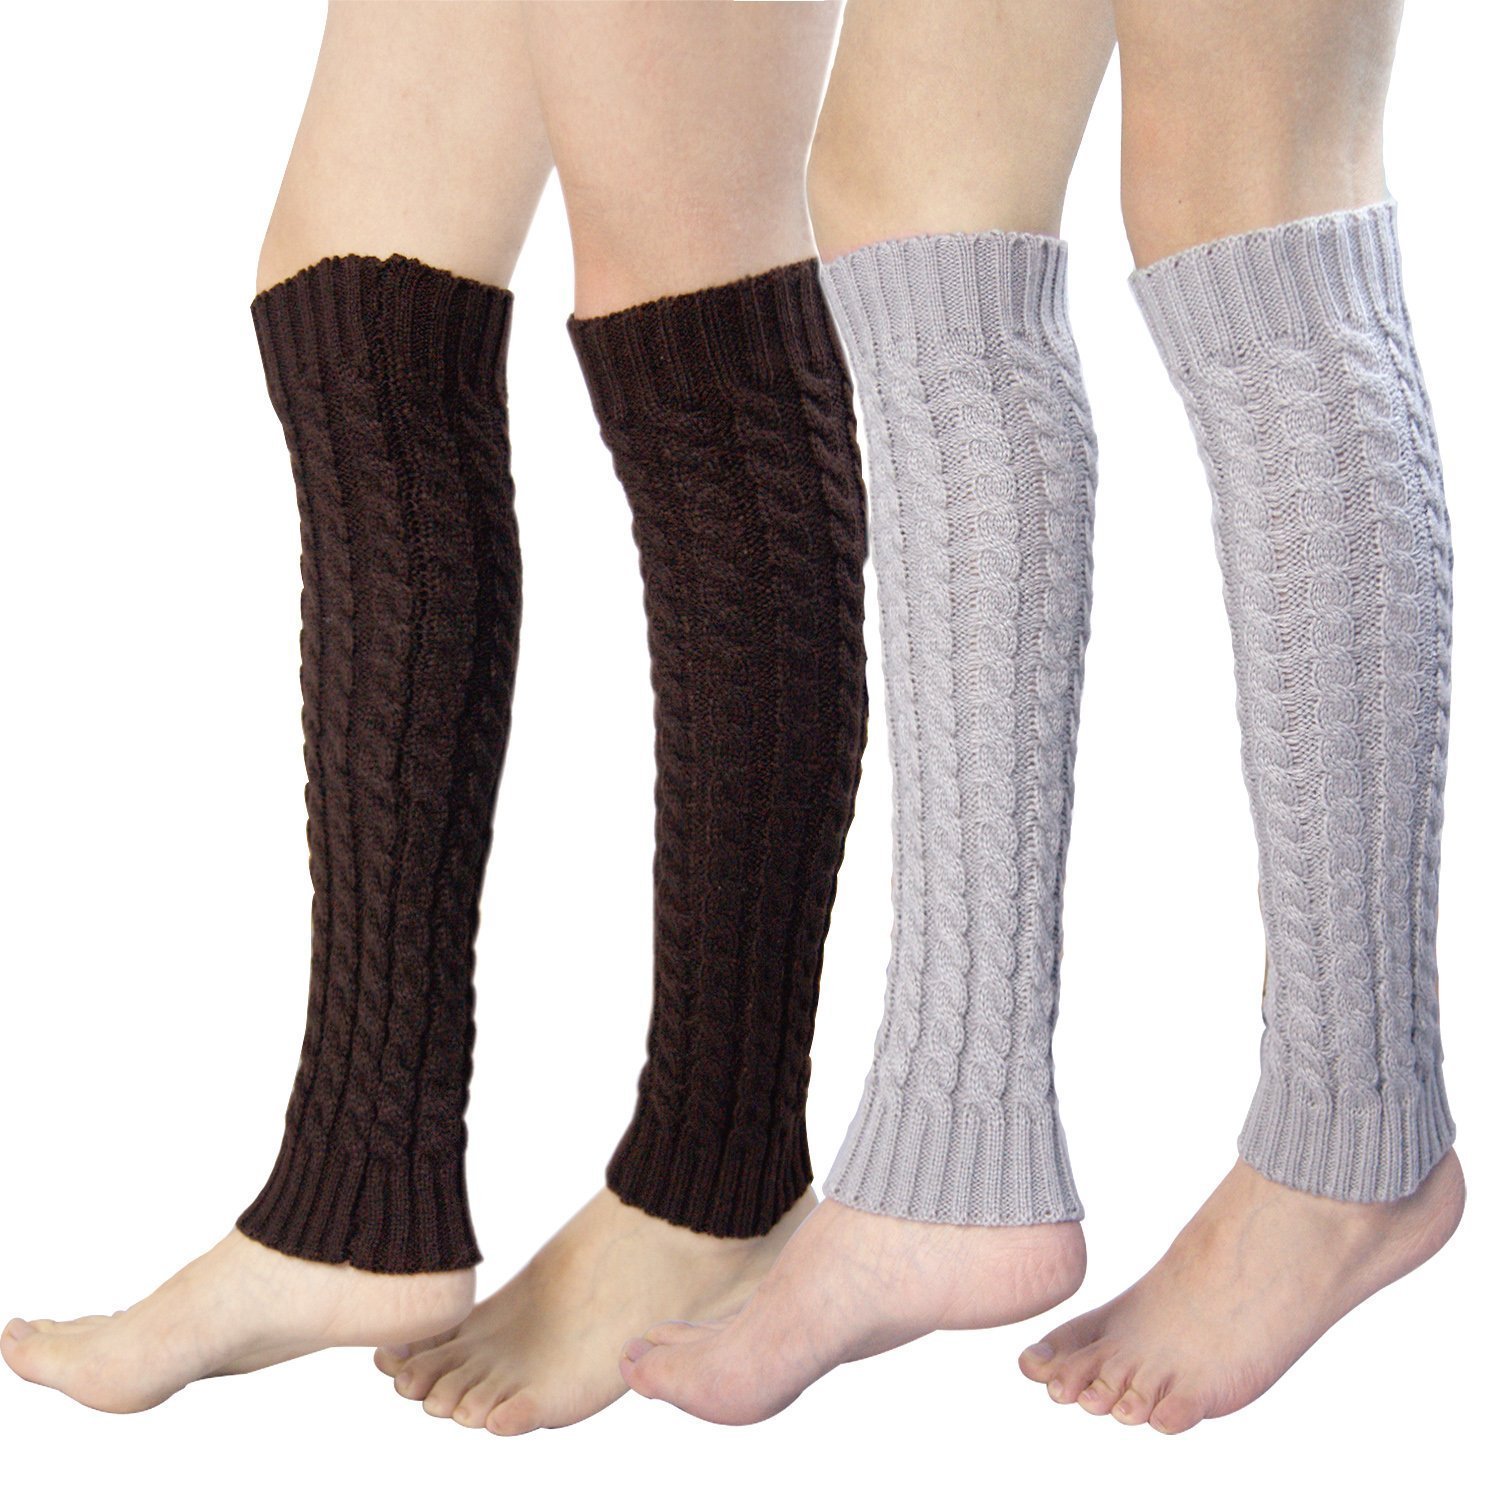 2 Pairs Womens Leg Warmers, Cable Knit Crochet Ankle Knee Warmers Boot Socks B07GSTWXMF